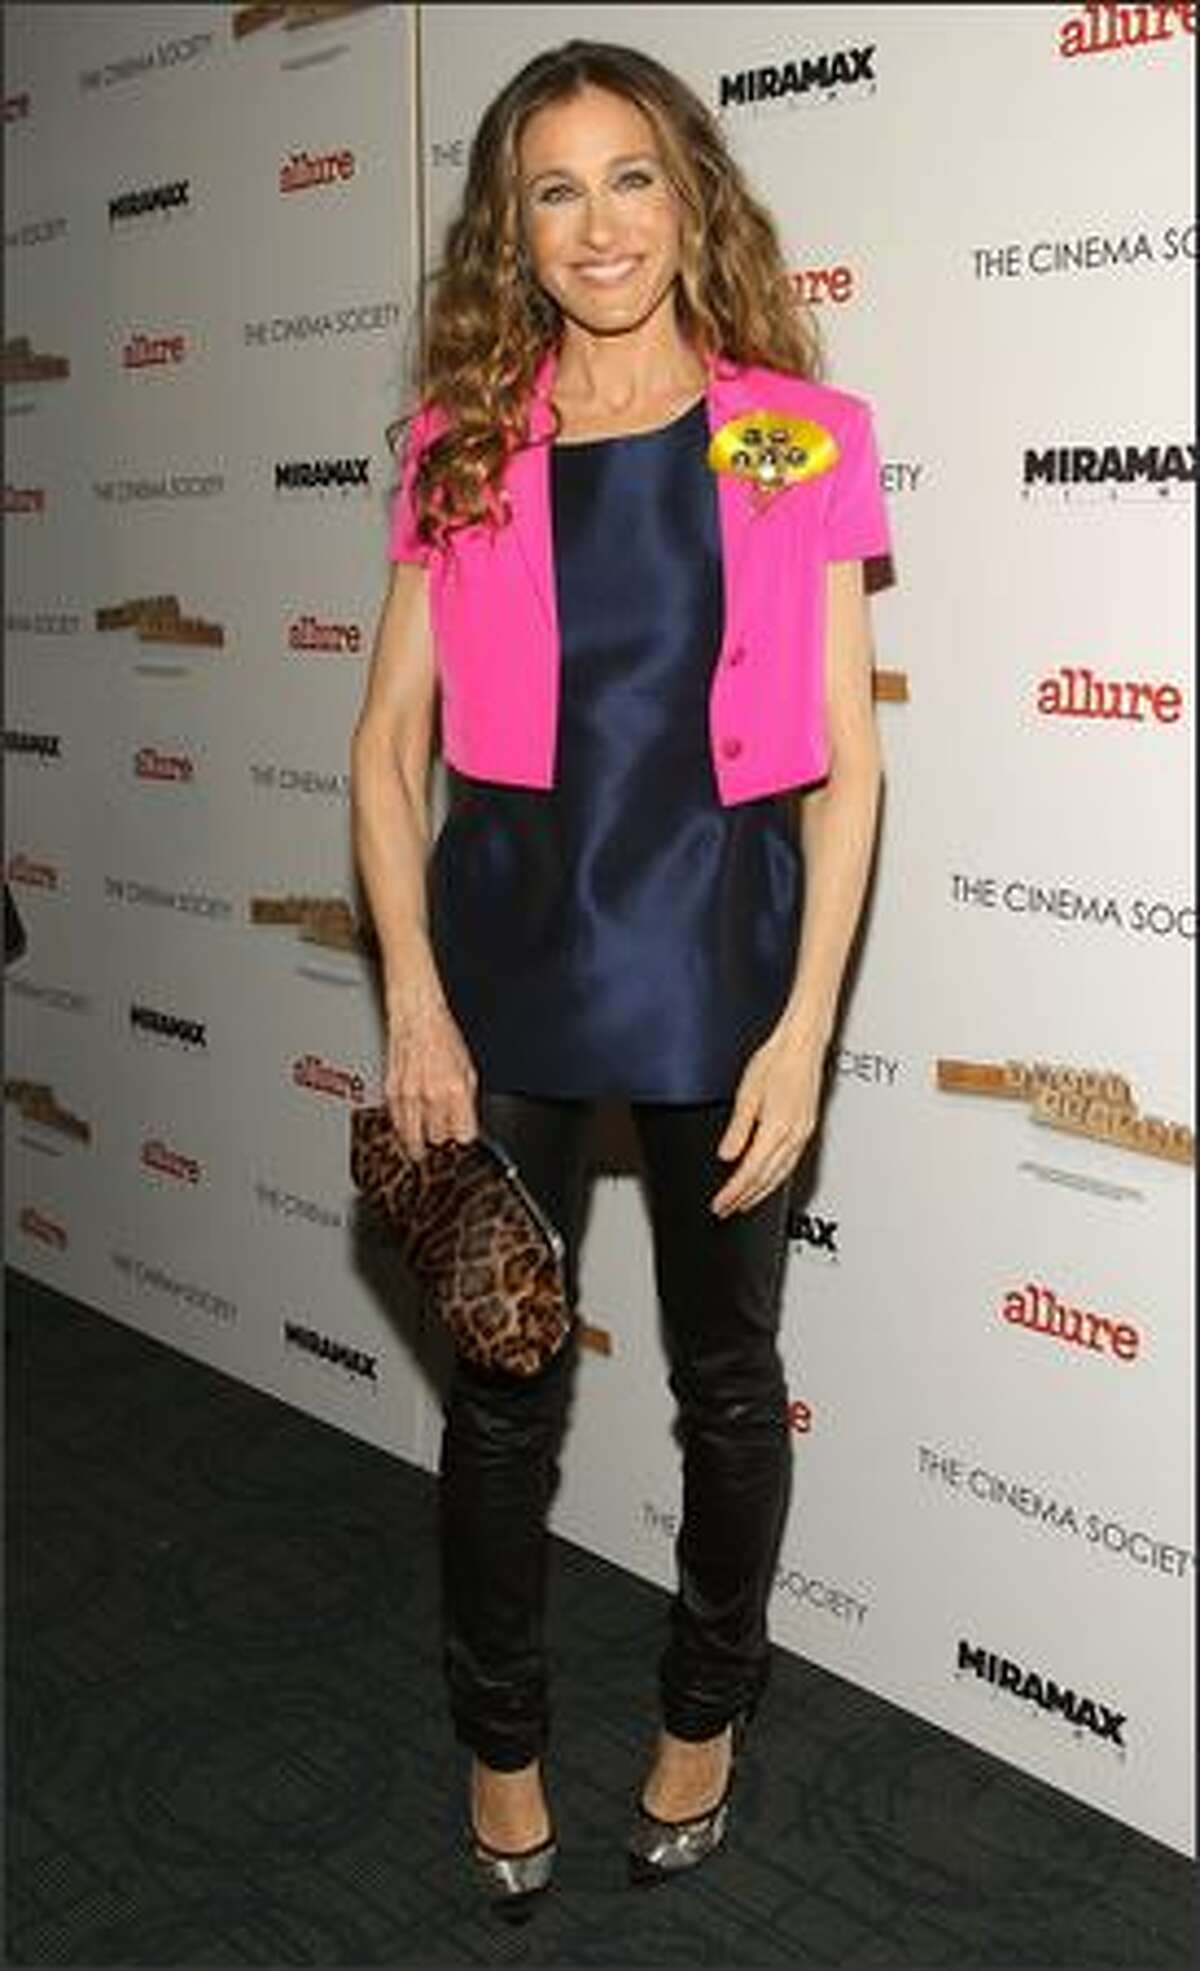 Sarah Jessica Parker attends the